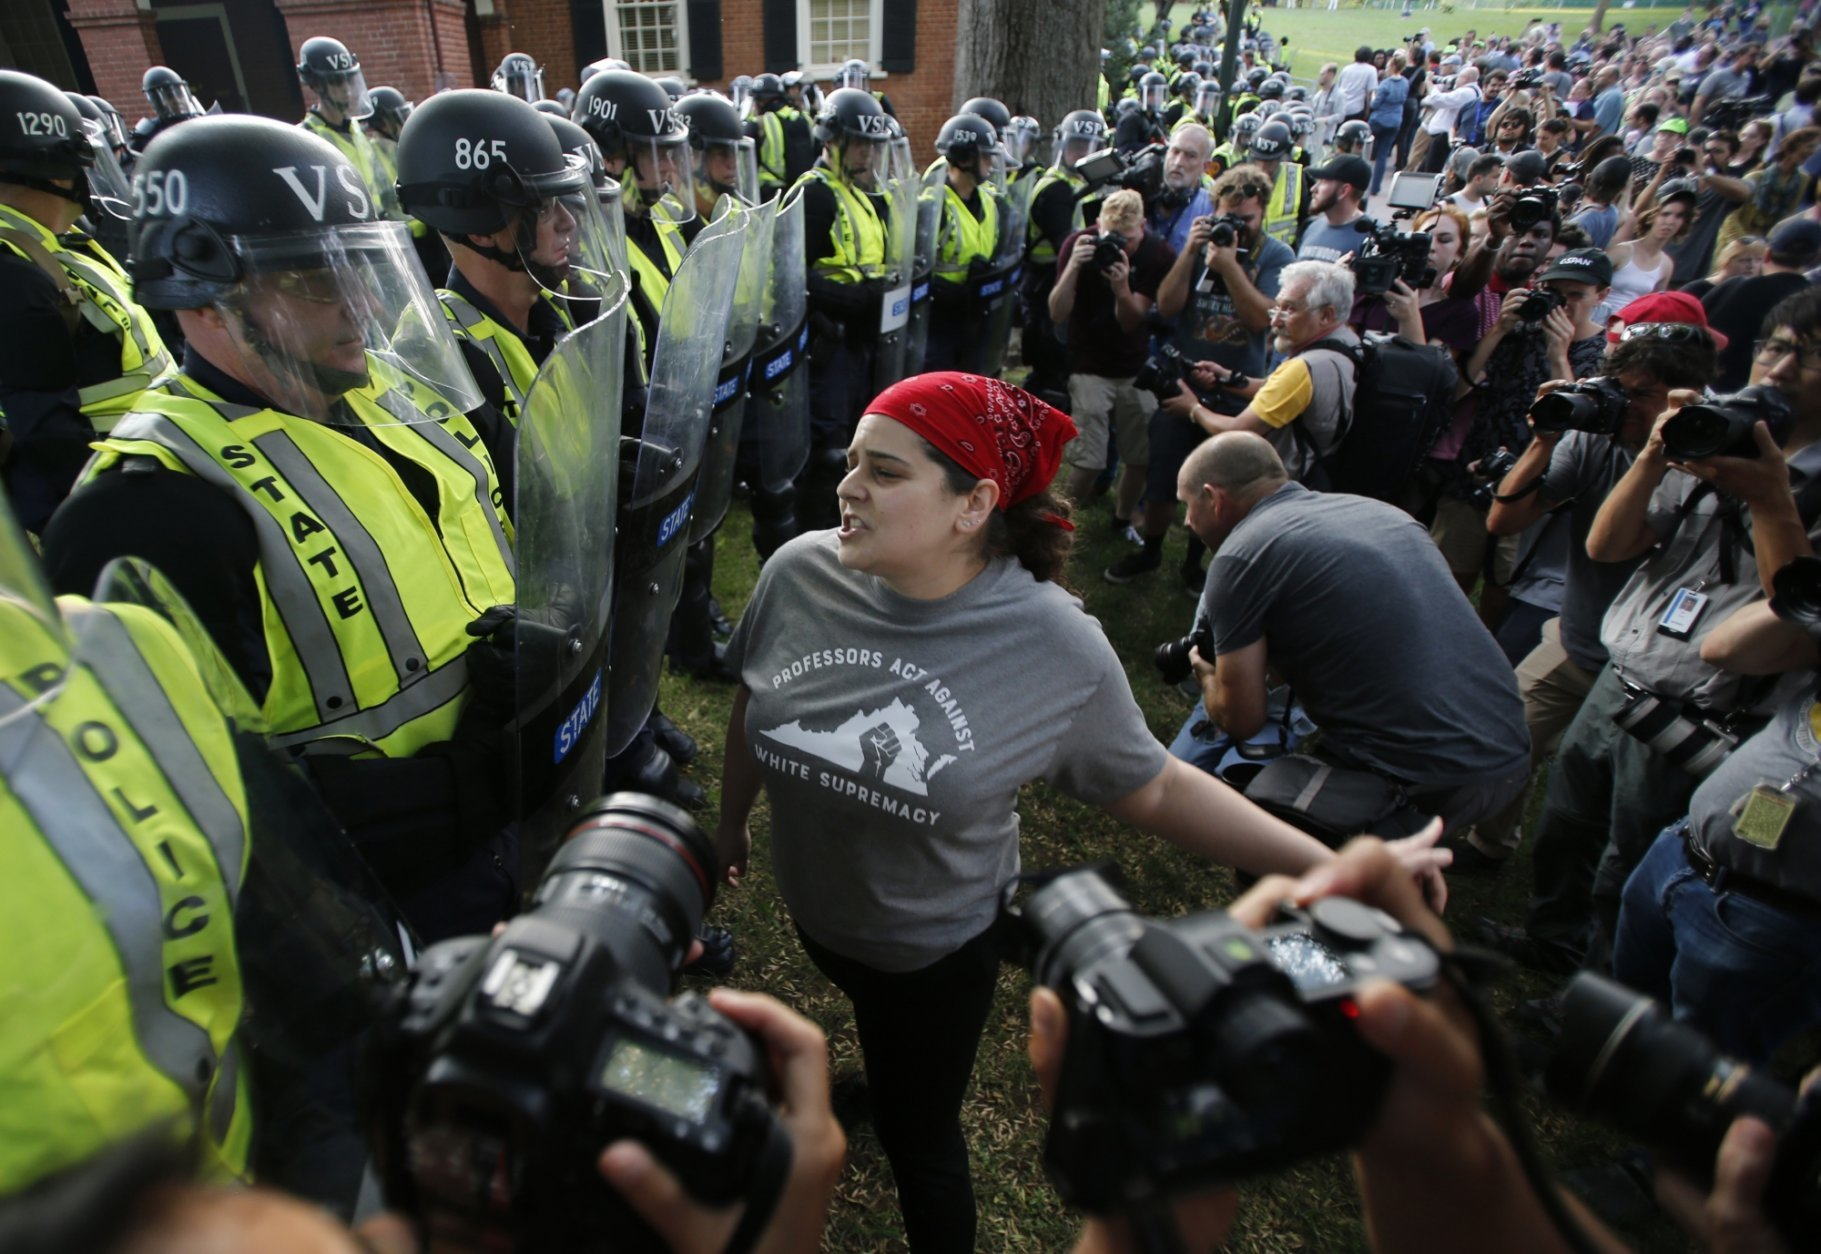 A protester confronts riot gear-clad police on the campus of the University of Virginia during a rally to mark the anniversary of last year's Unite the Right rally in Charlottesville, Va., Saturday, Aug. 11, 2018. (AP Photo/Steve Helber)